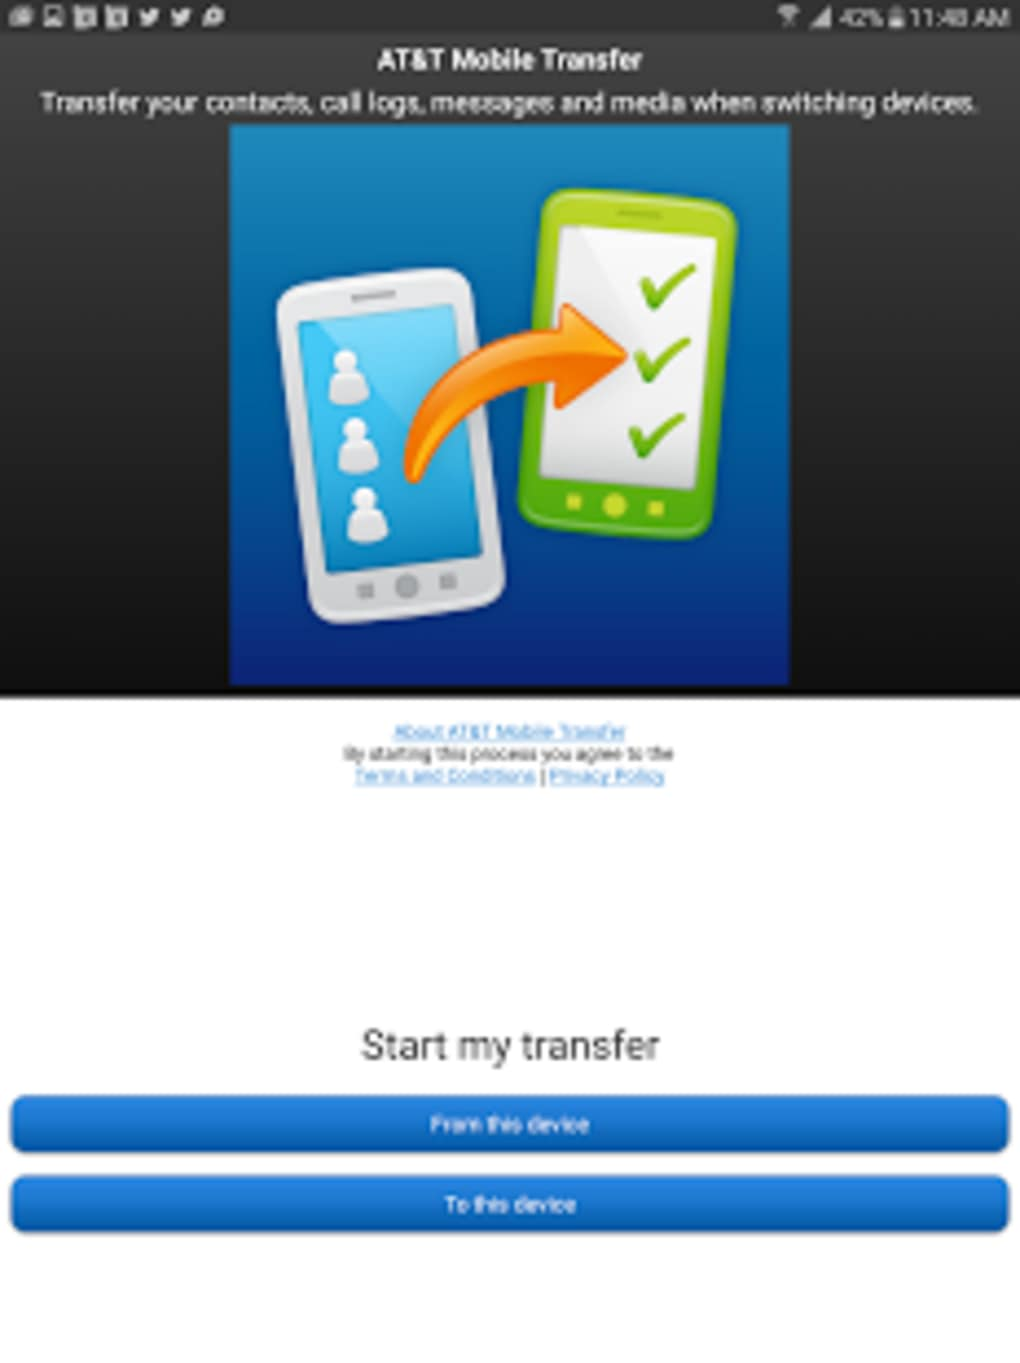 AT&T Mobile Transfer for Android - Download